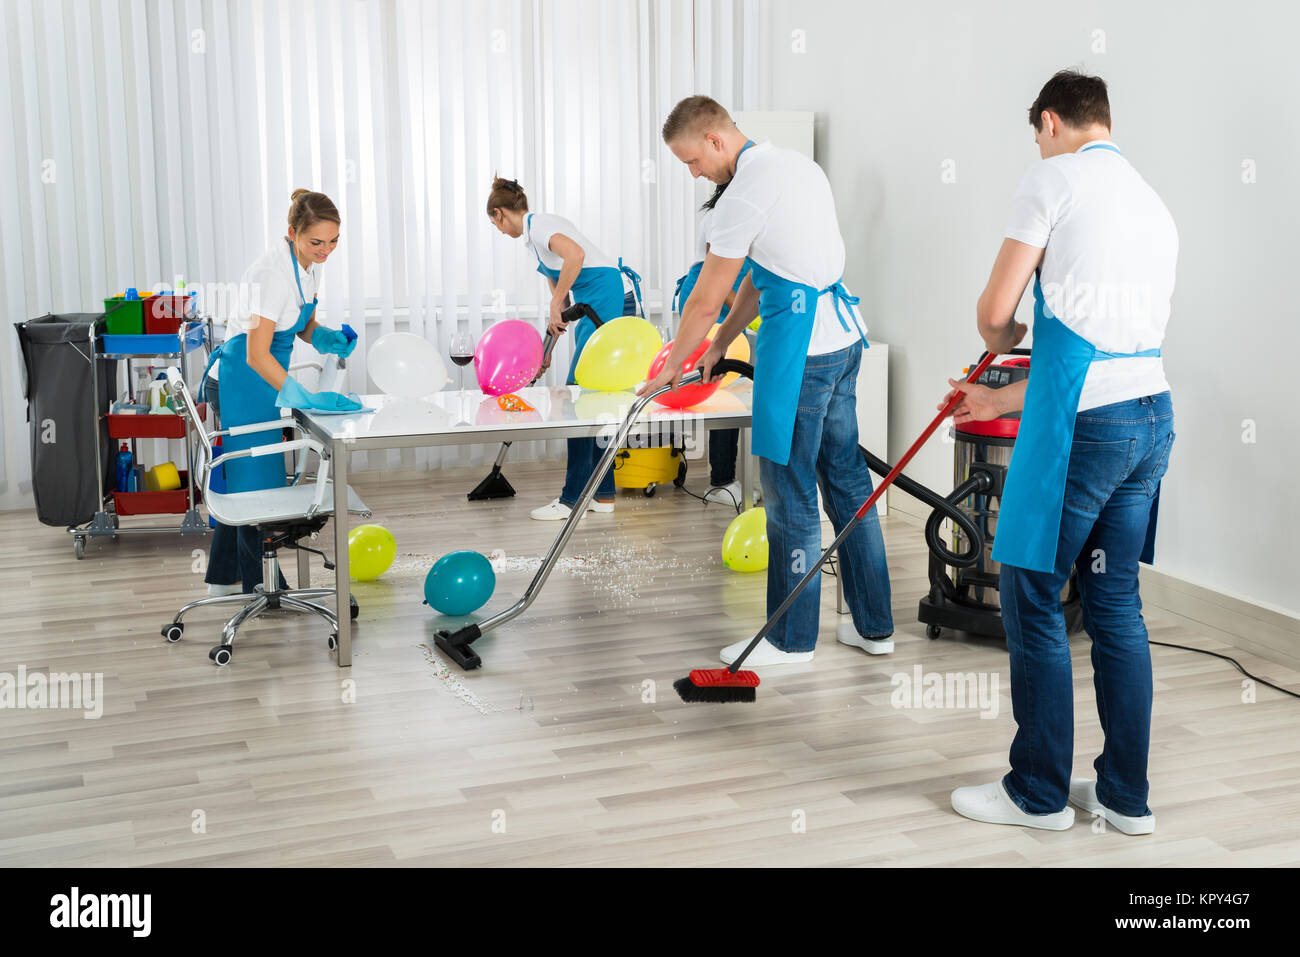 Janitors Cleaning The Office After Party - Stock Image